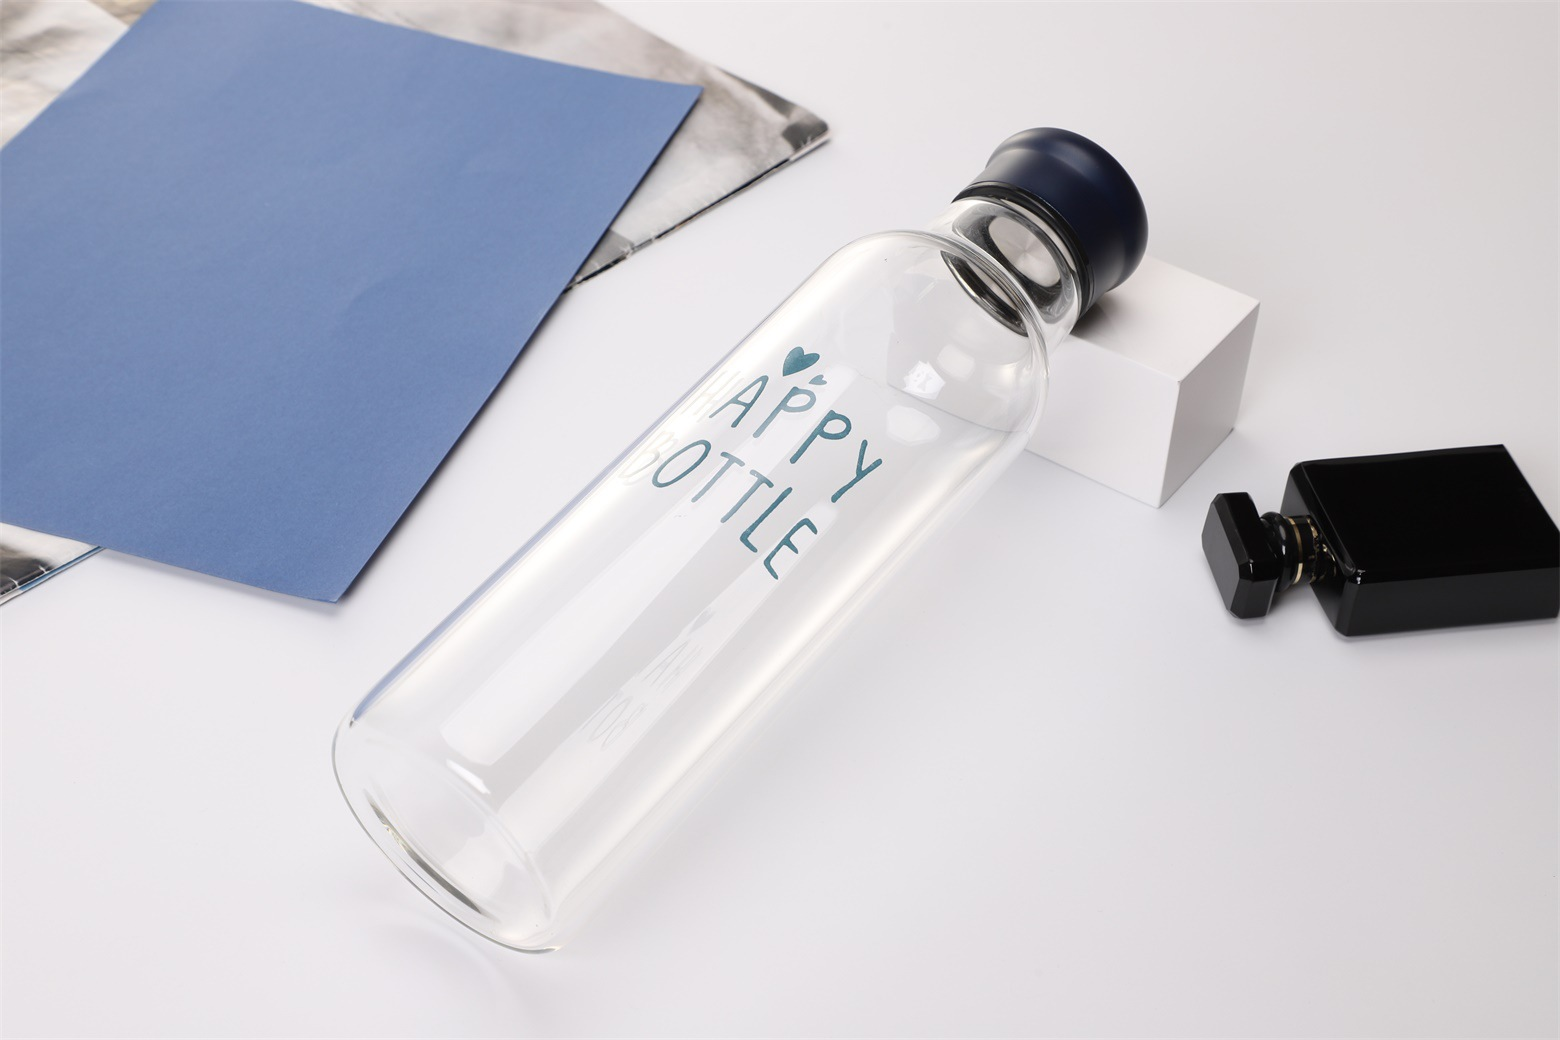 1000ml Portable My Bottle Borosilicate Glass Water Bottle With 304 Stainless Steel Lid